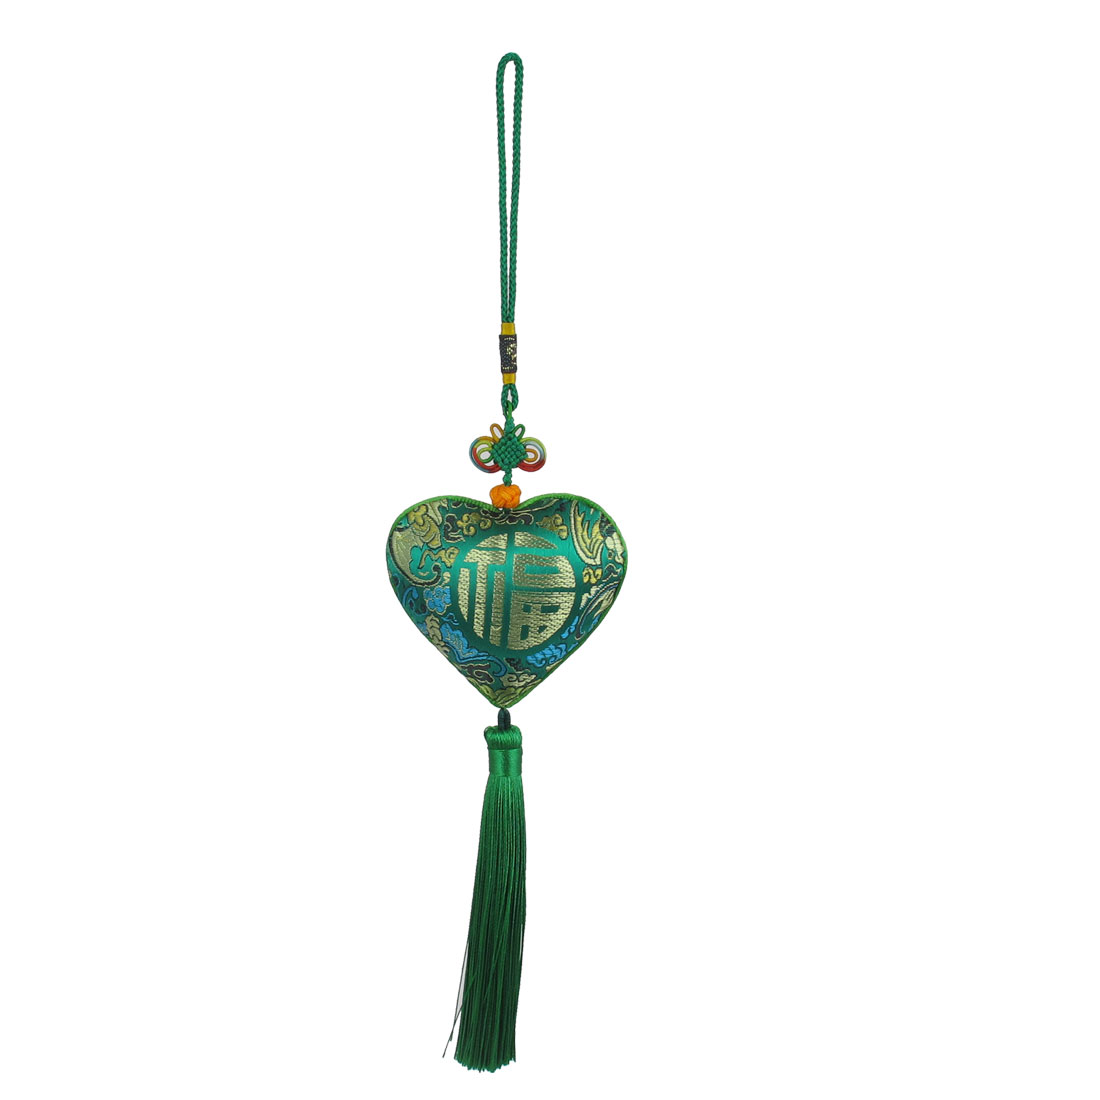 Tassel Detail Heart-shaped Fu Letter Print Chinese Herb Sachet Pendant Car Interior Hanging Ornament Green